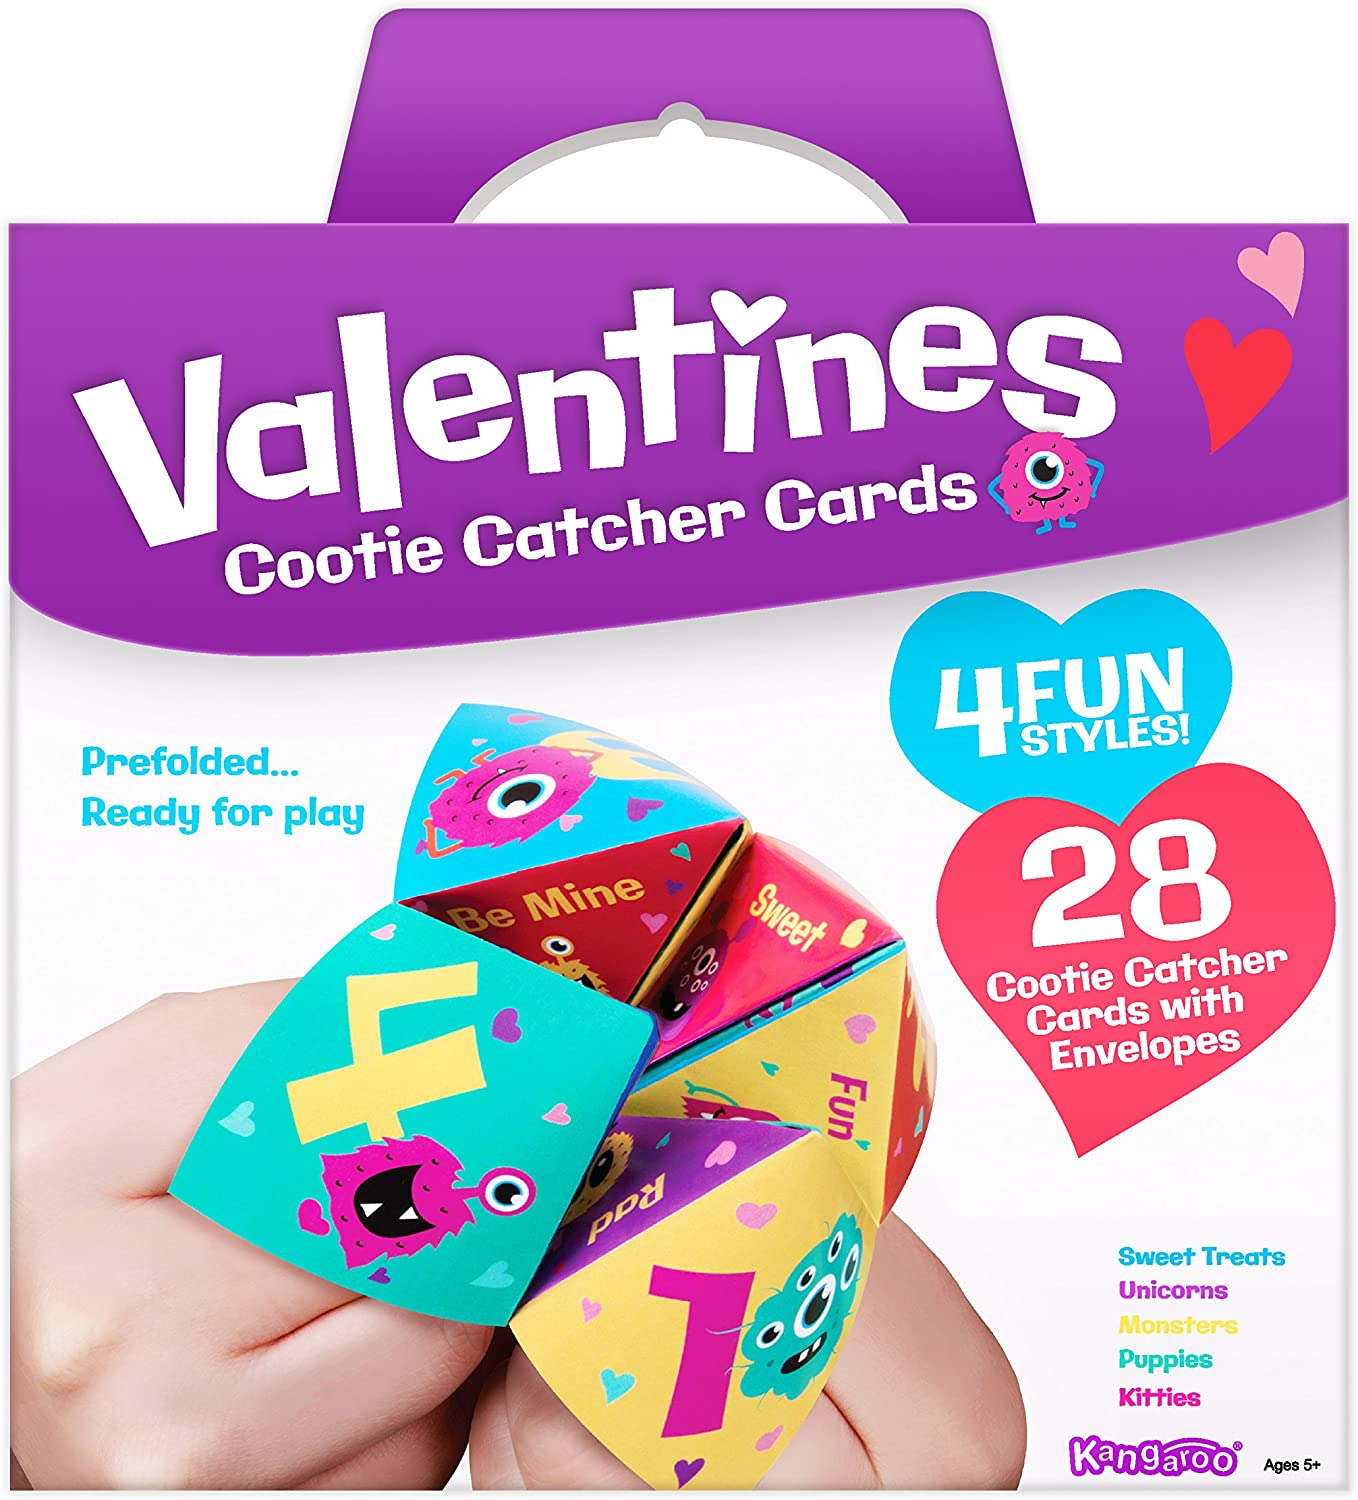 Kangaroo Cootie Catcher Valentine's Cards (28-Count)